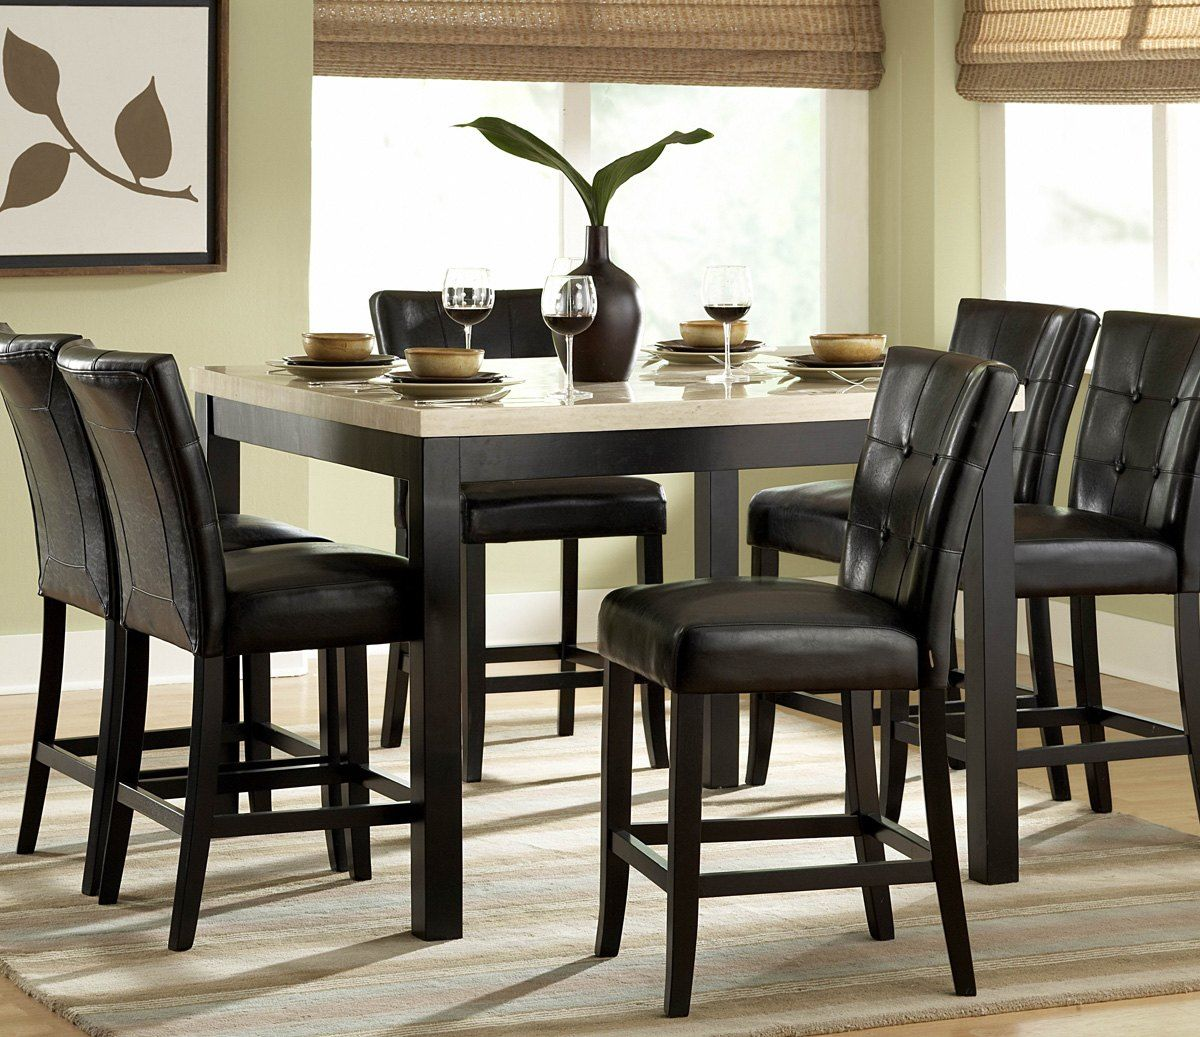 astounding 7 piece counter height dining set with leaf